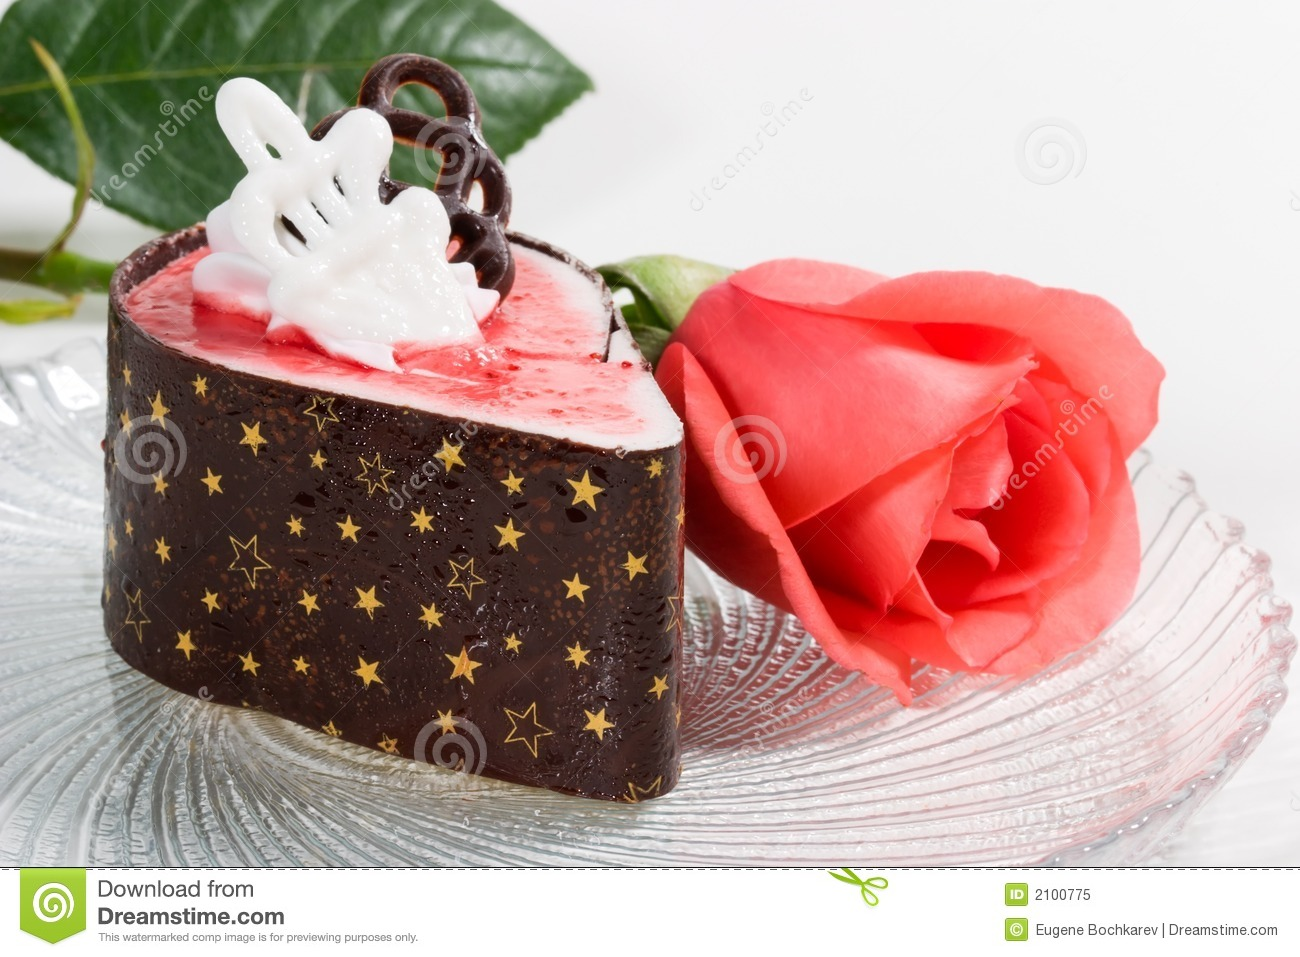 Rose And Raspberry Souffle Cake Royalty Free Stock Photo ...